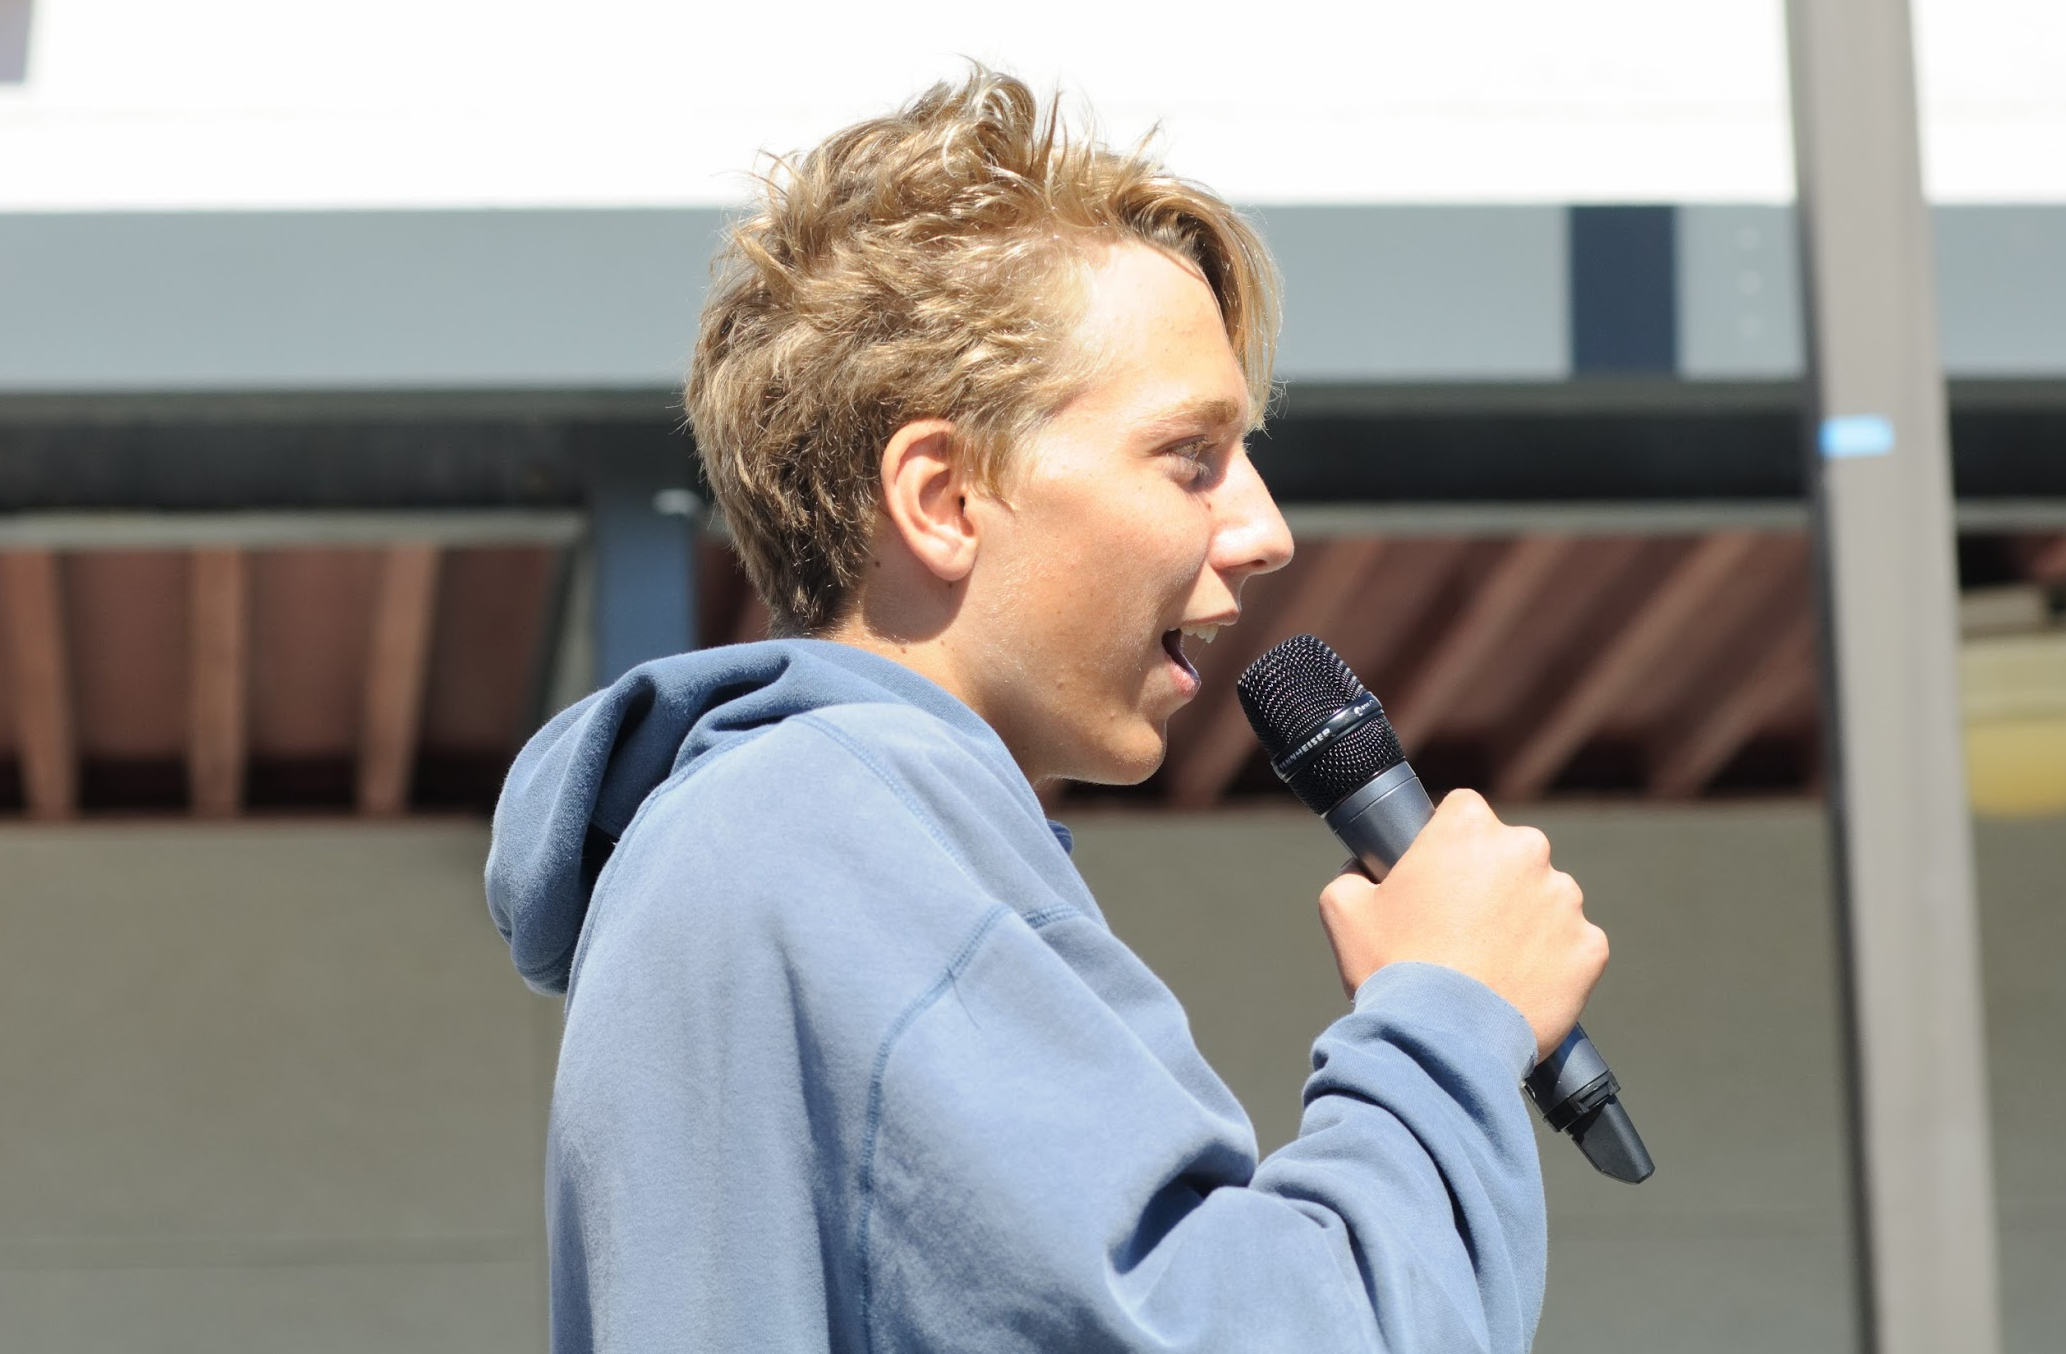 Joe Shoemaker '21 shares his thoughts on the activity. Credit: Muriel Rowley / The Foothill Dragon Press